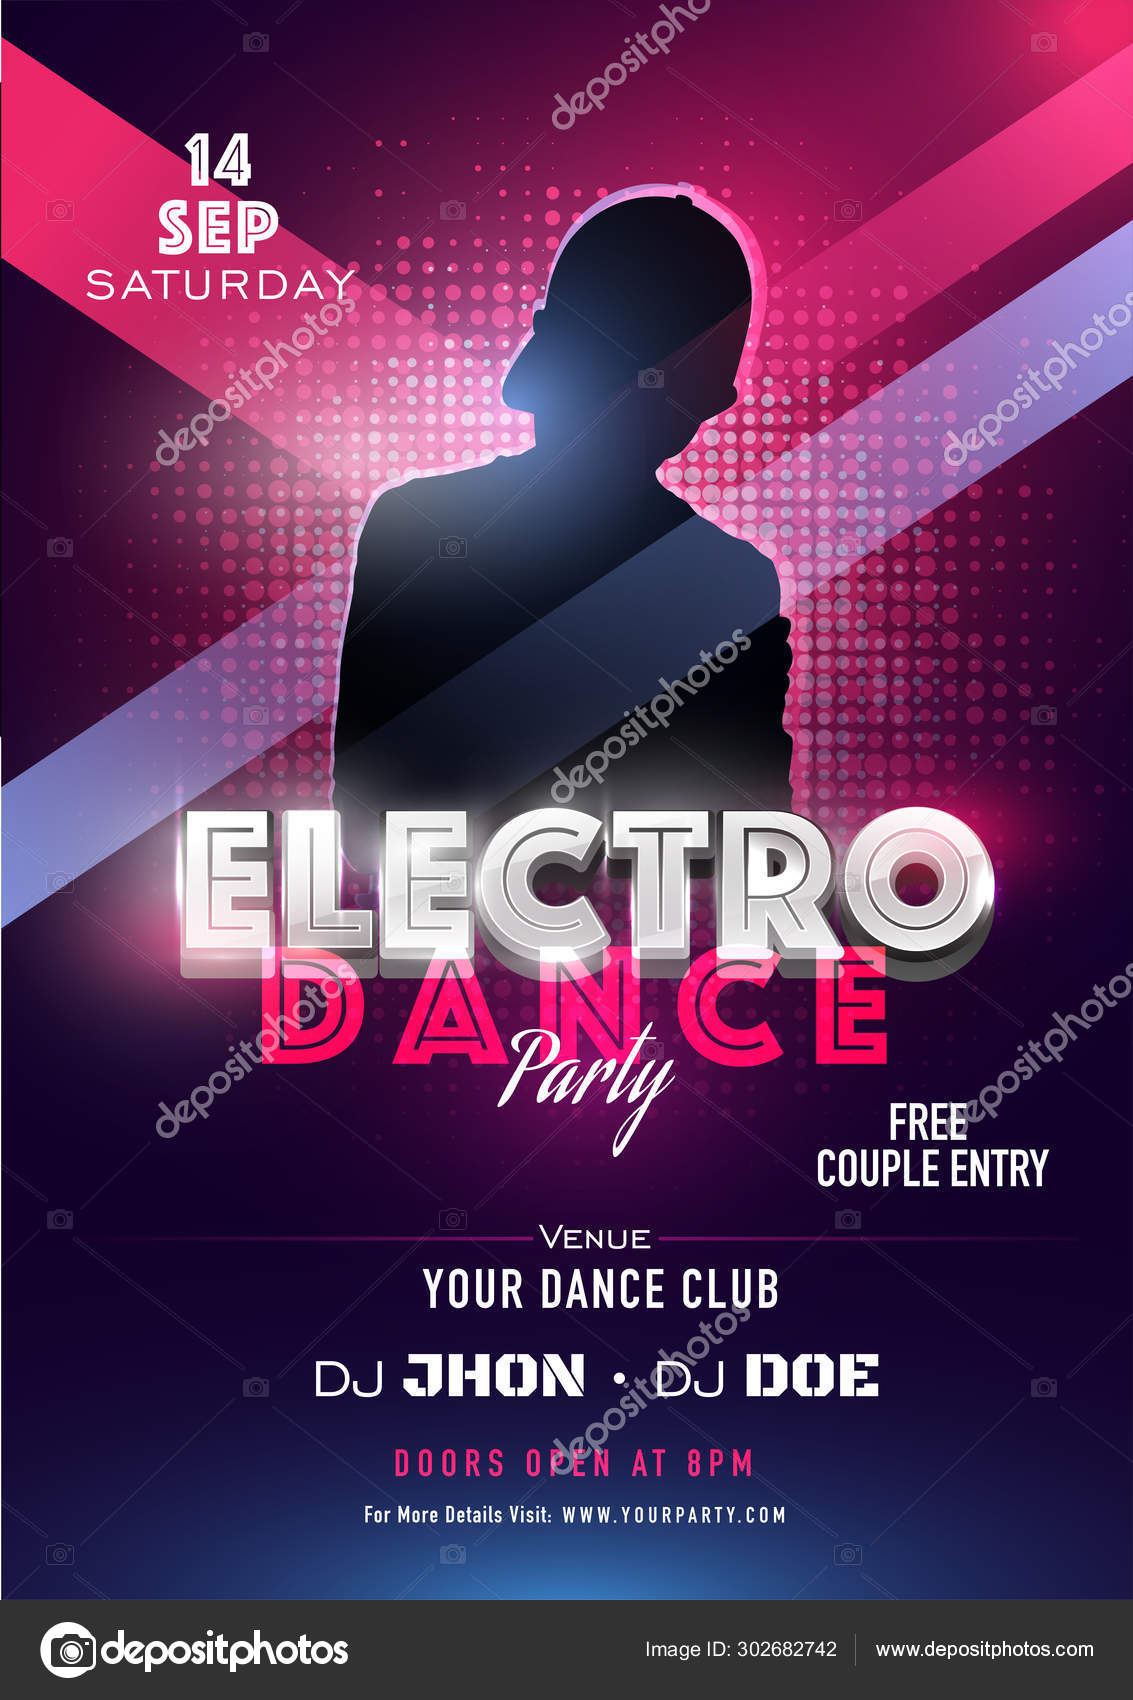 Electro Dance Party Invitation Card Design With Silhouette